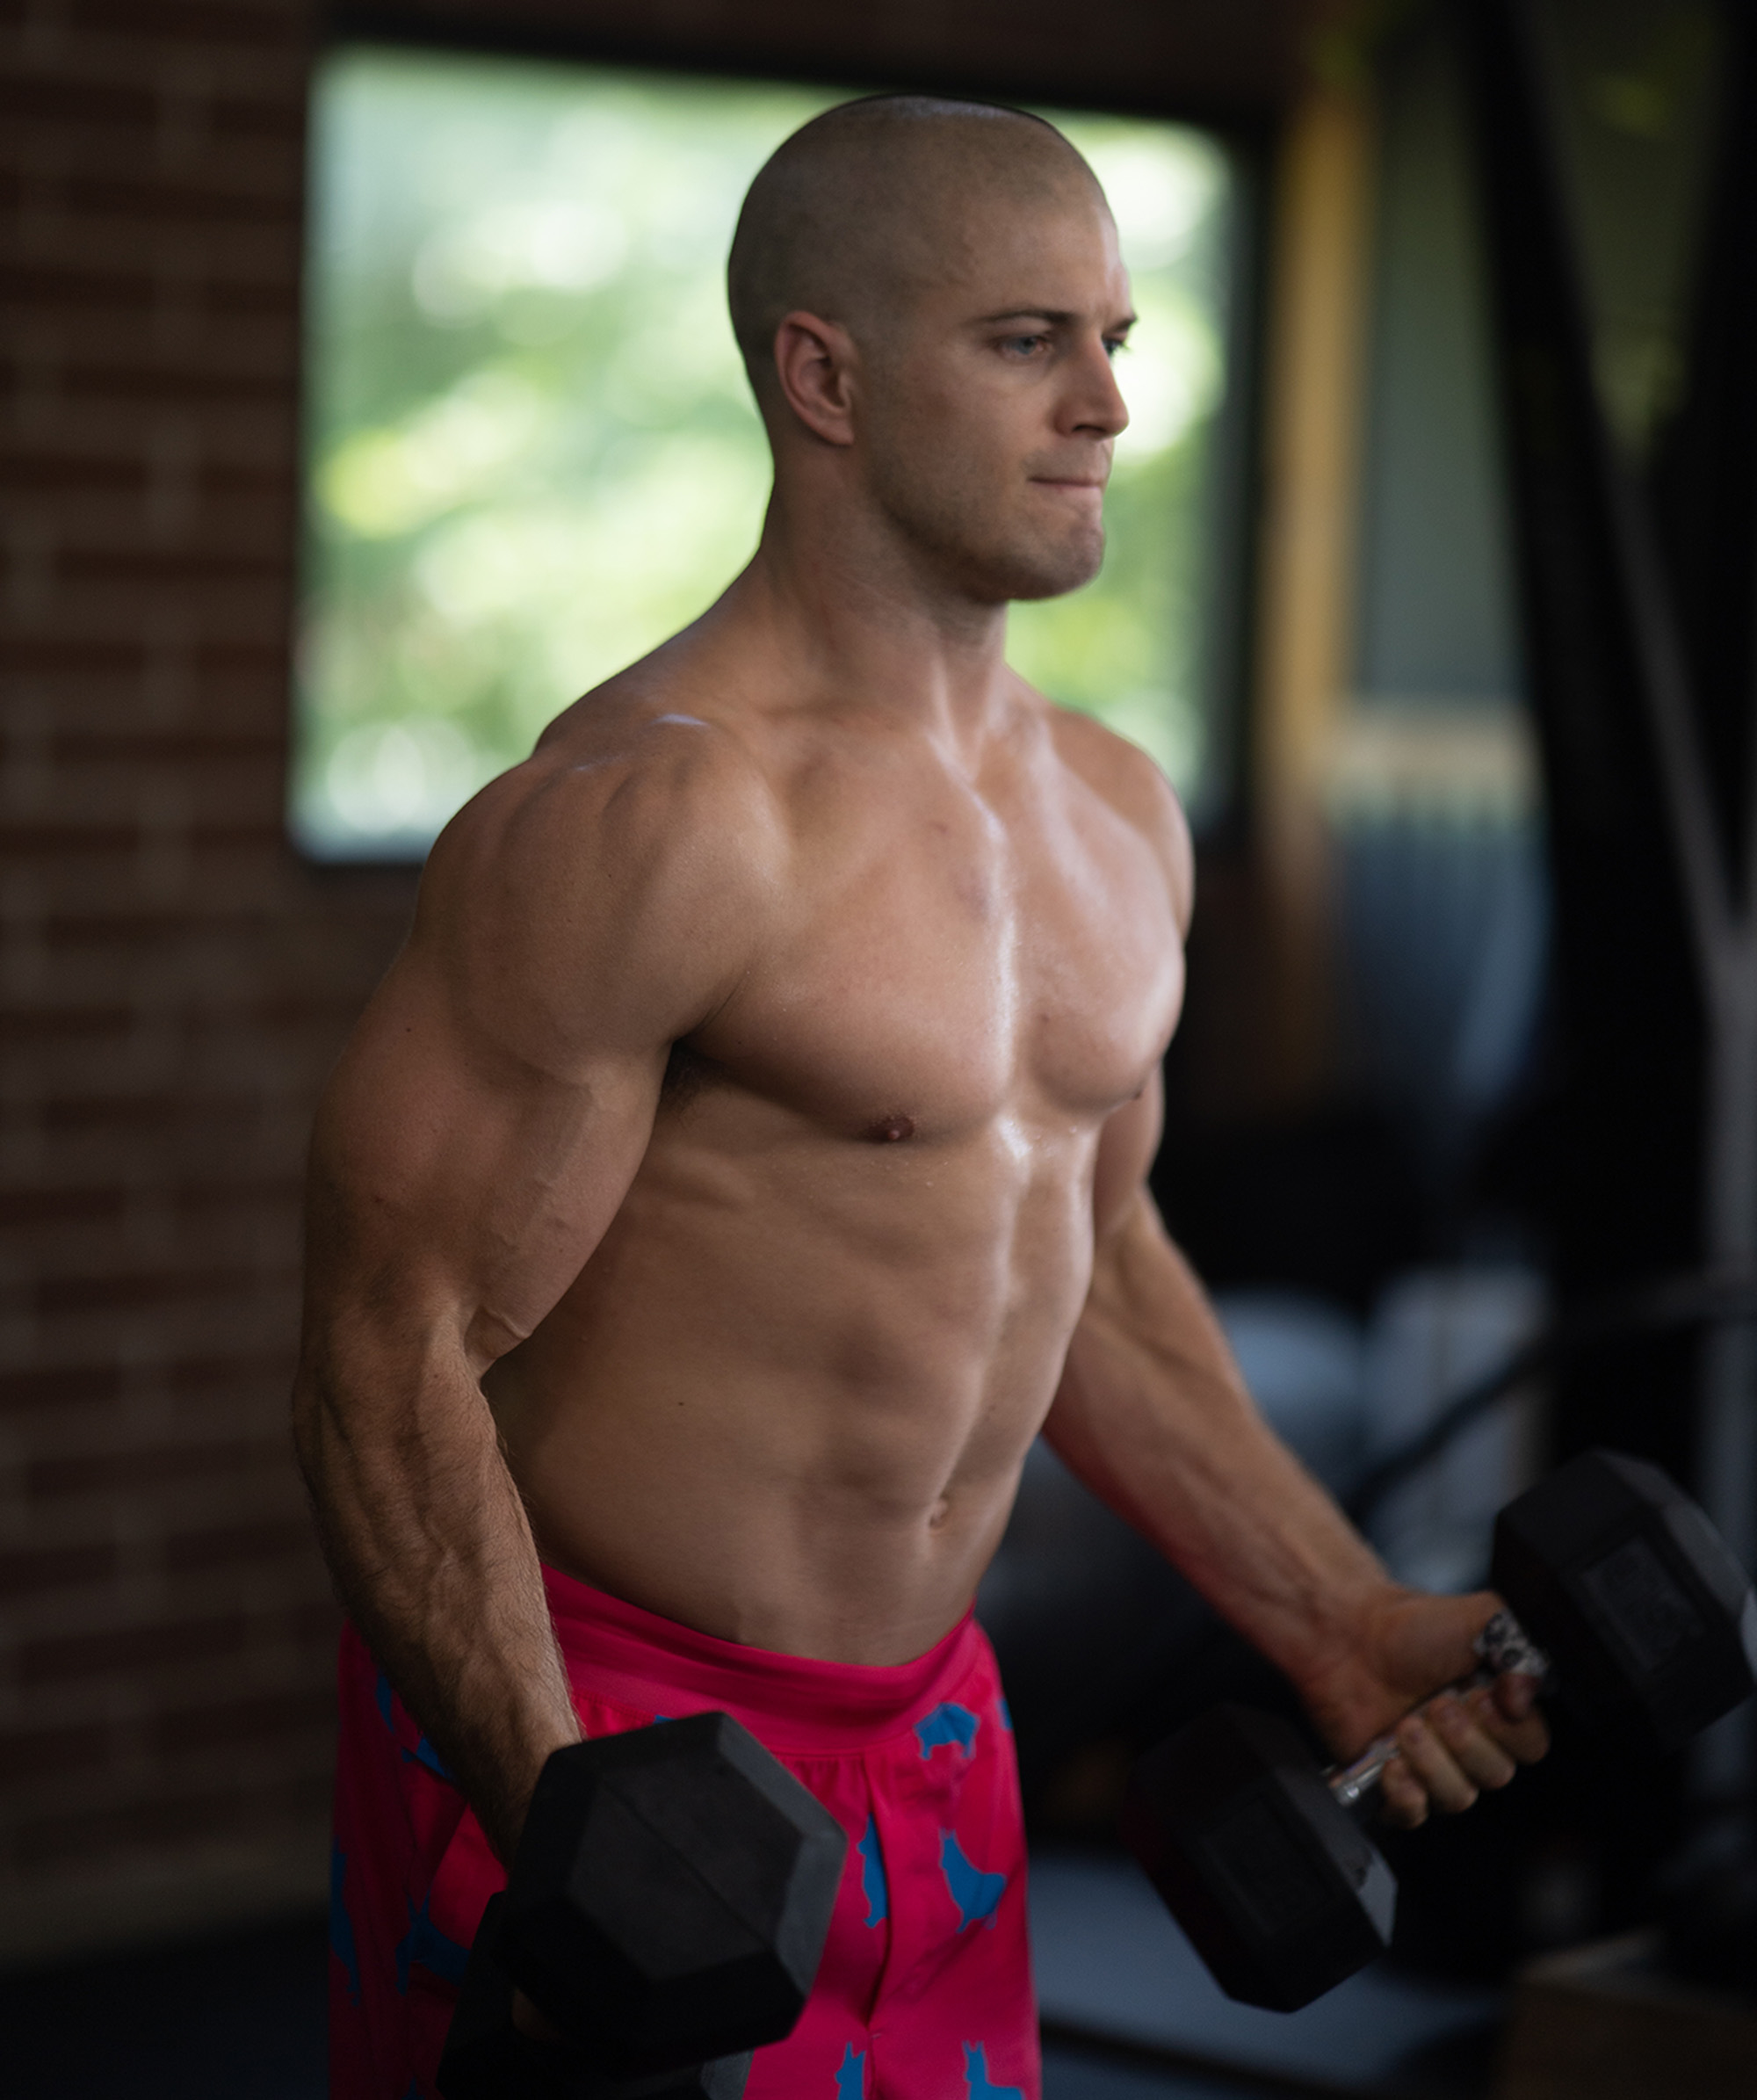 man with good physique practicing strength training